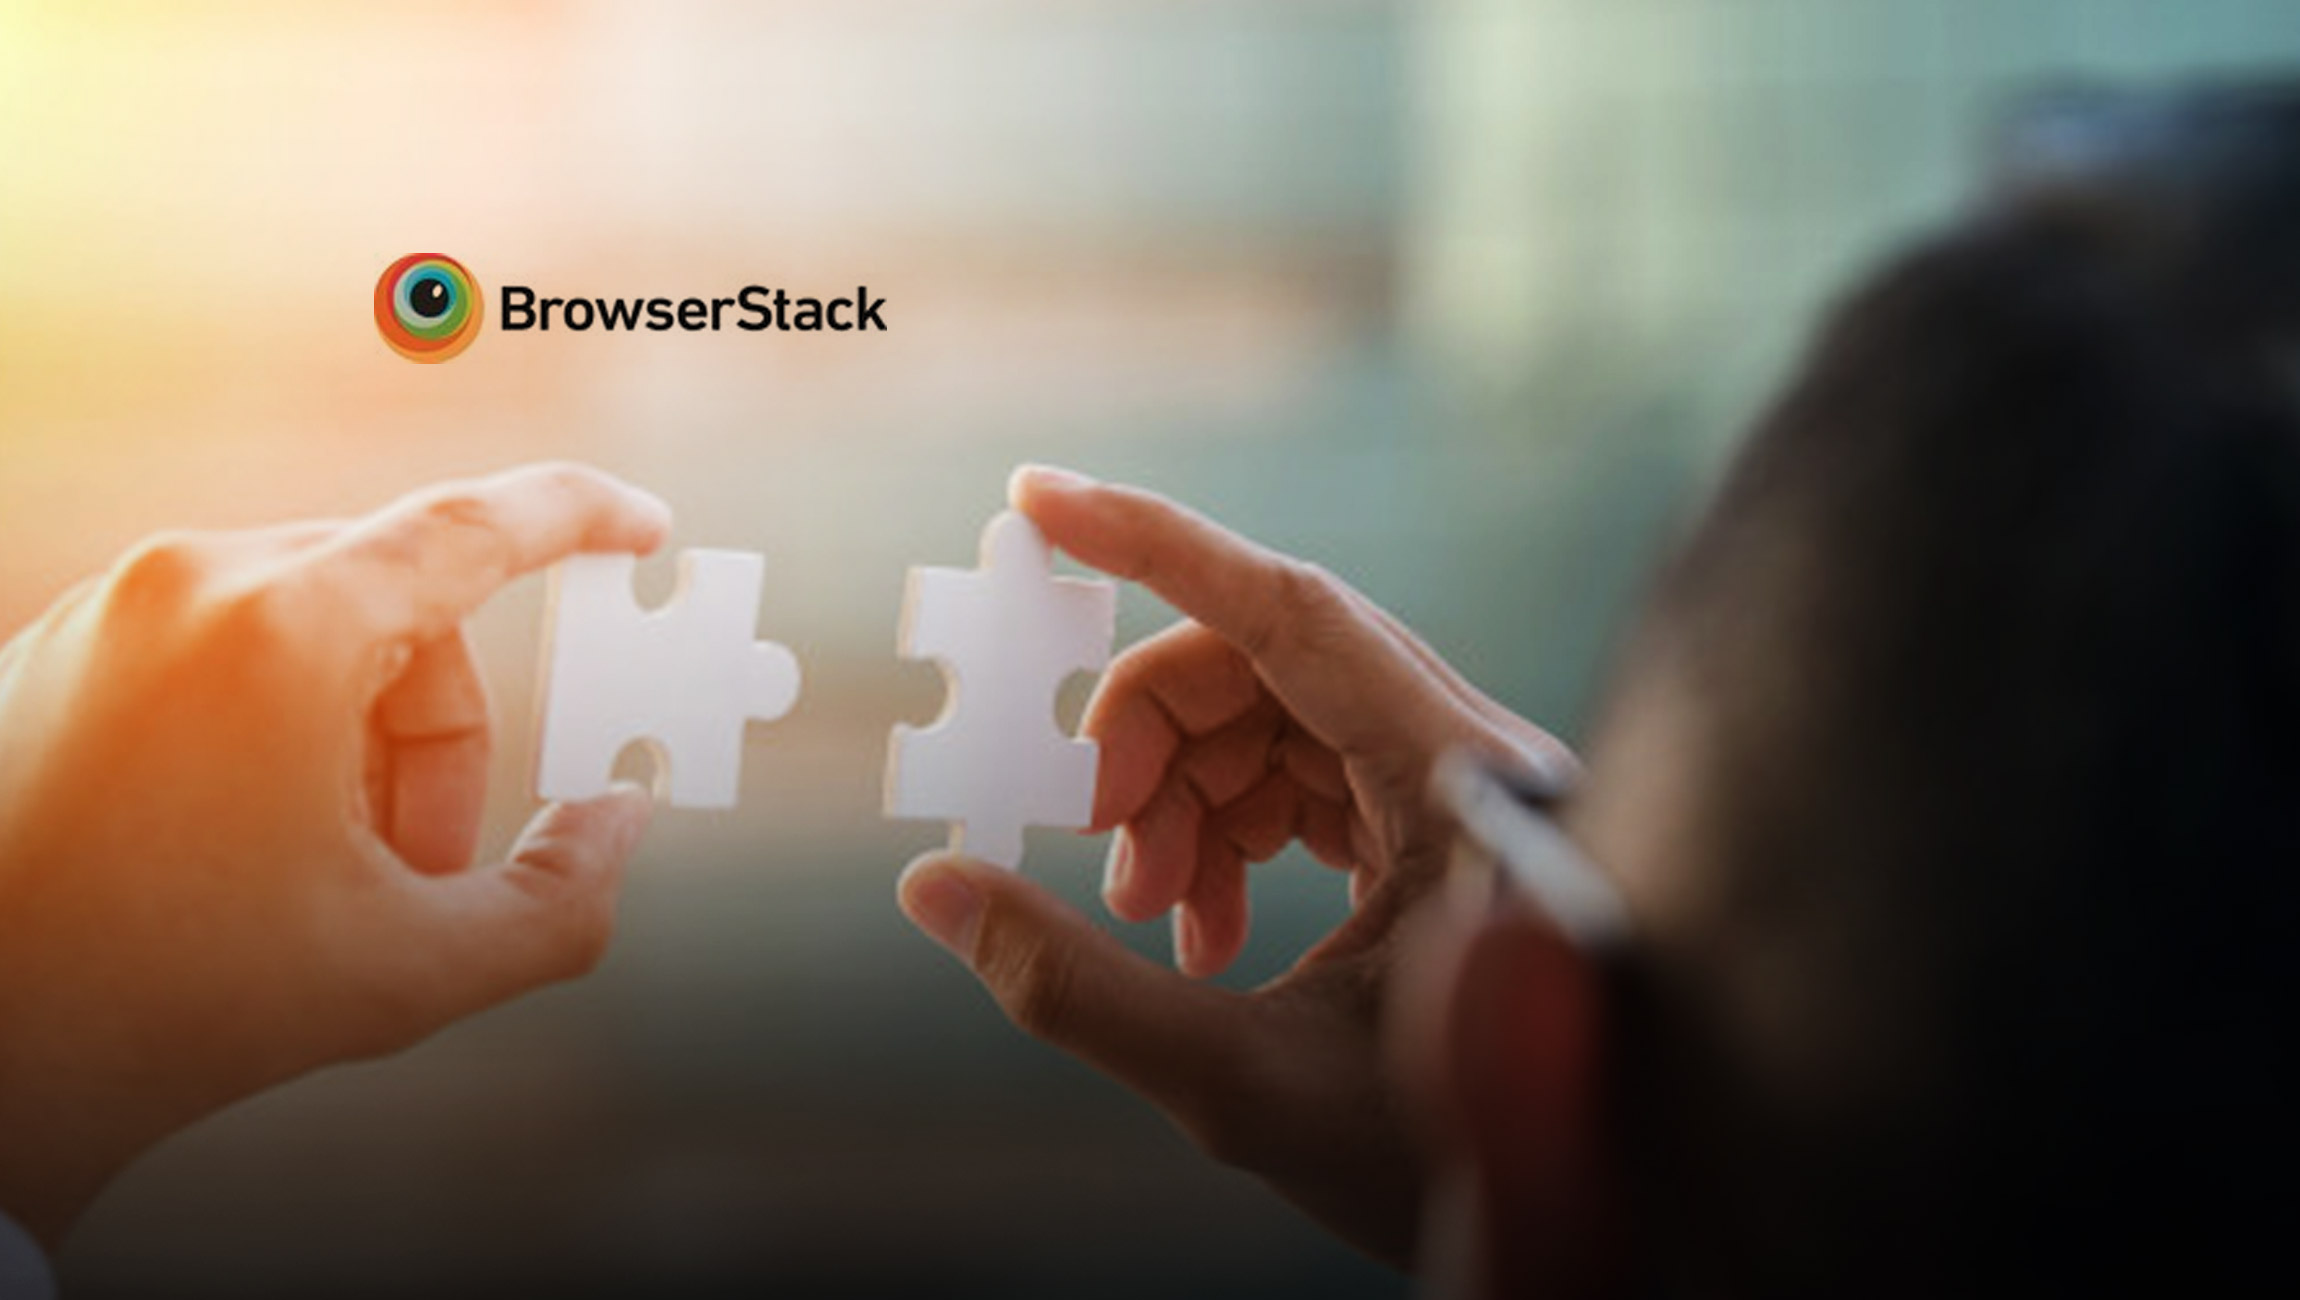 BrowserStack Acquires Percy to Add Visual Testing to Their Platform